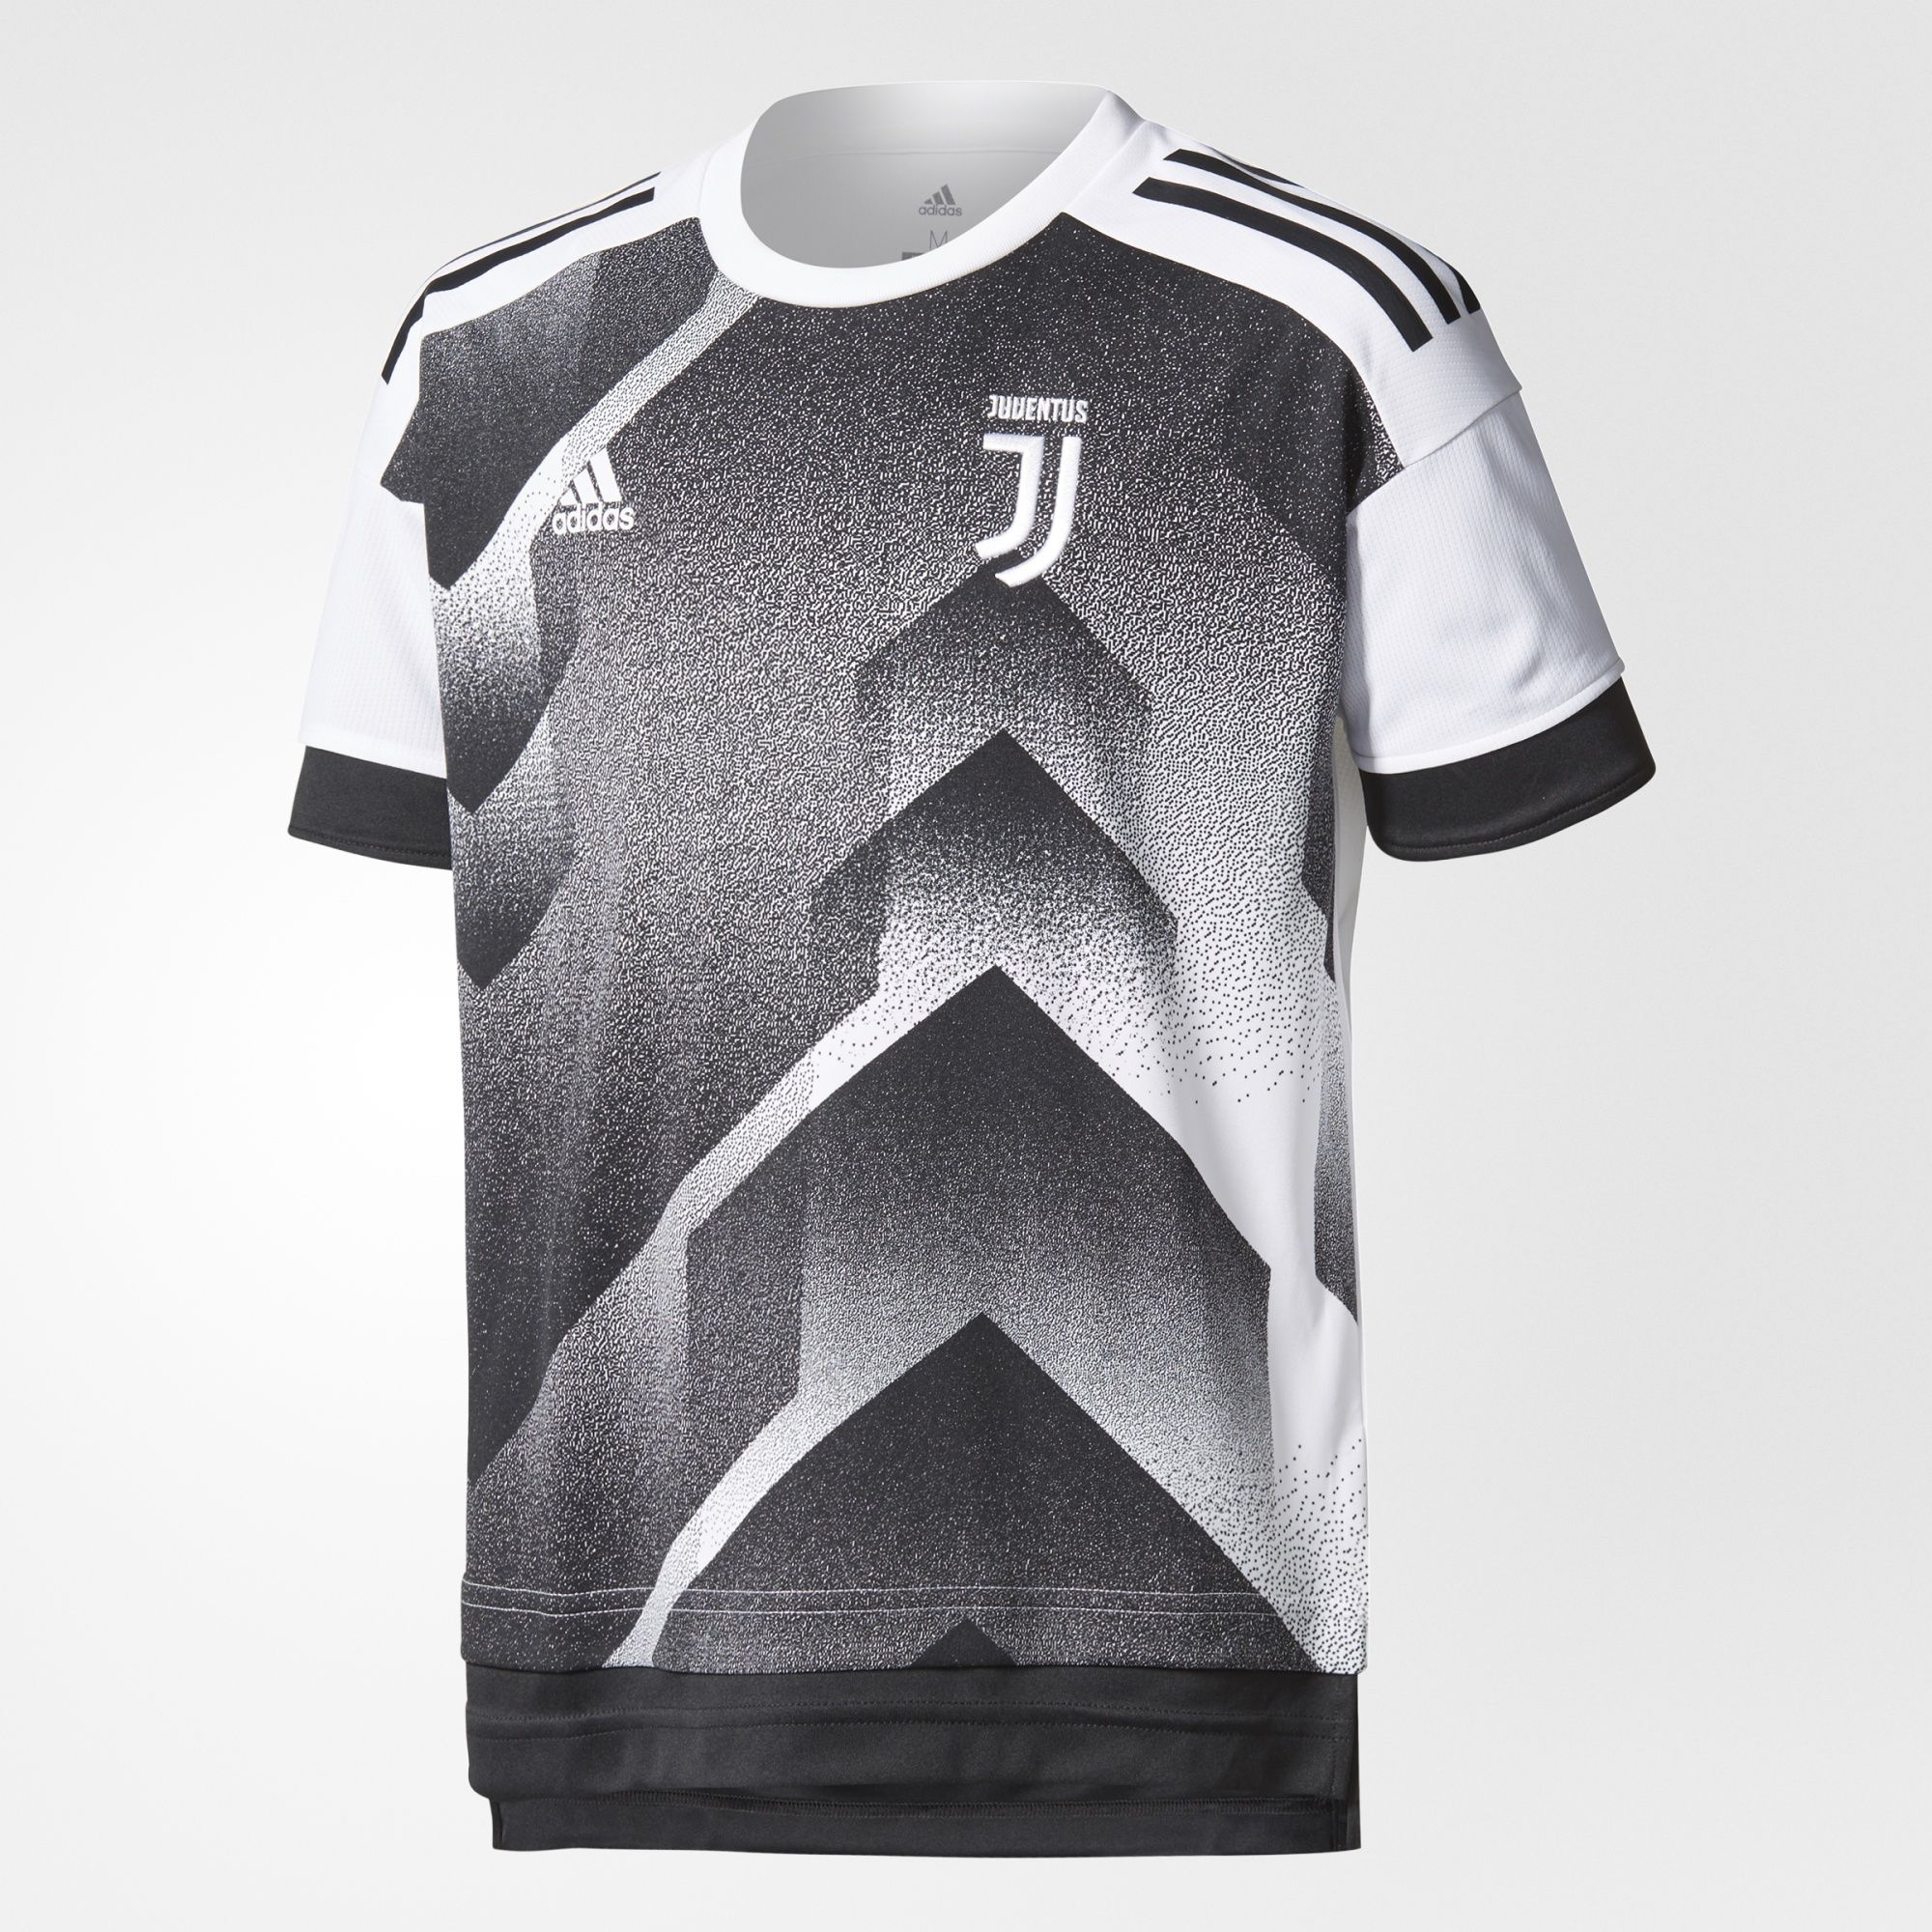 finest selection 70485 a2897 adidas Juventus Home Pre-Match Jersey Youth 2017/18 - White